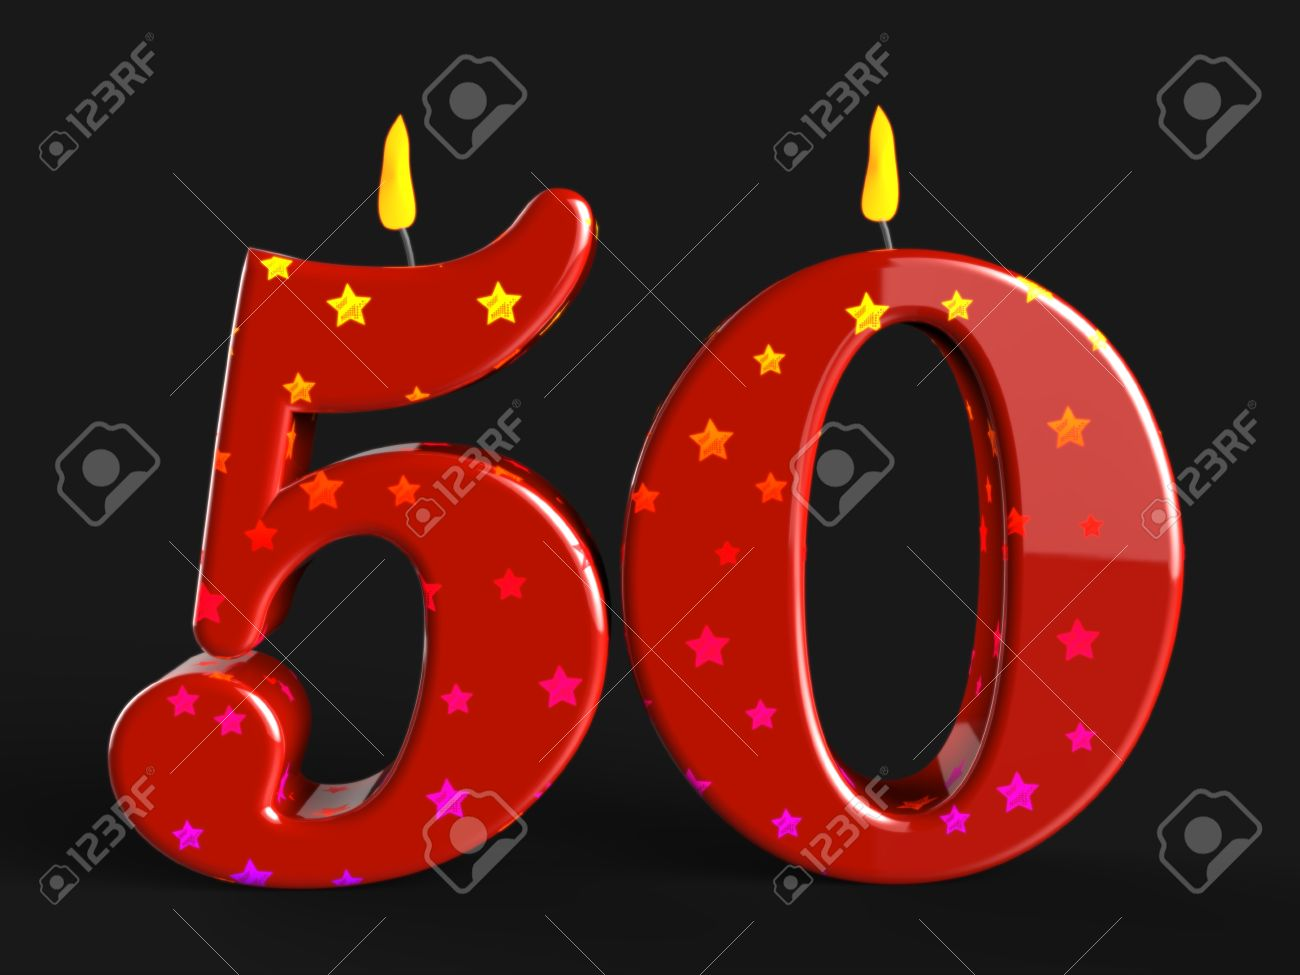 Number Fifty Candles Showing Fiftieth Birthday Or Celebration Stock Photo